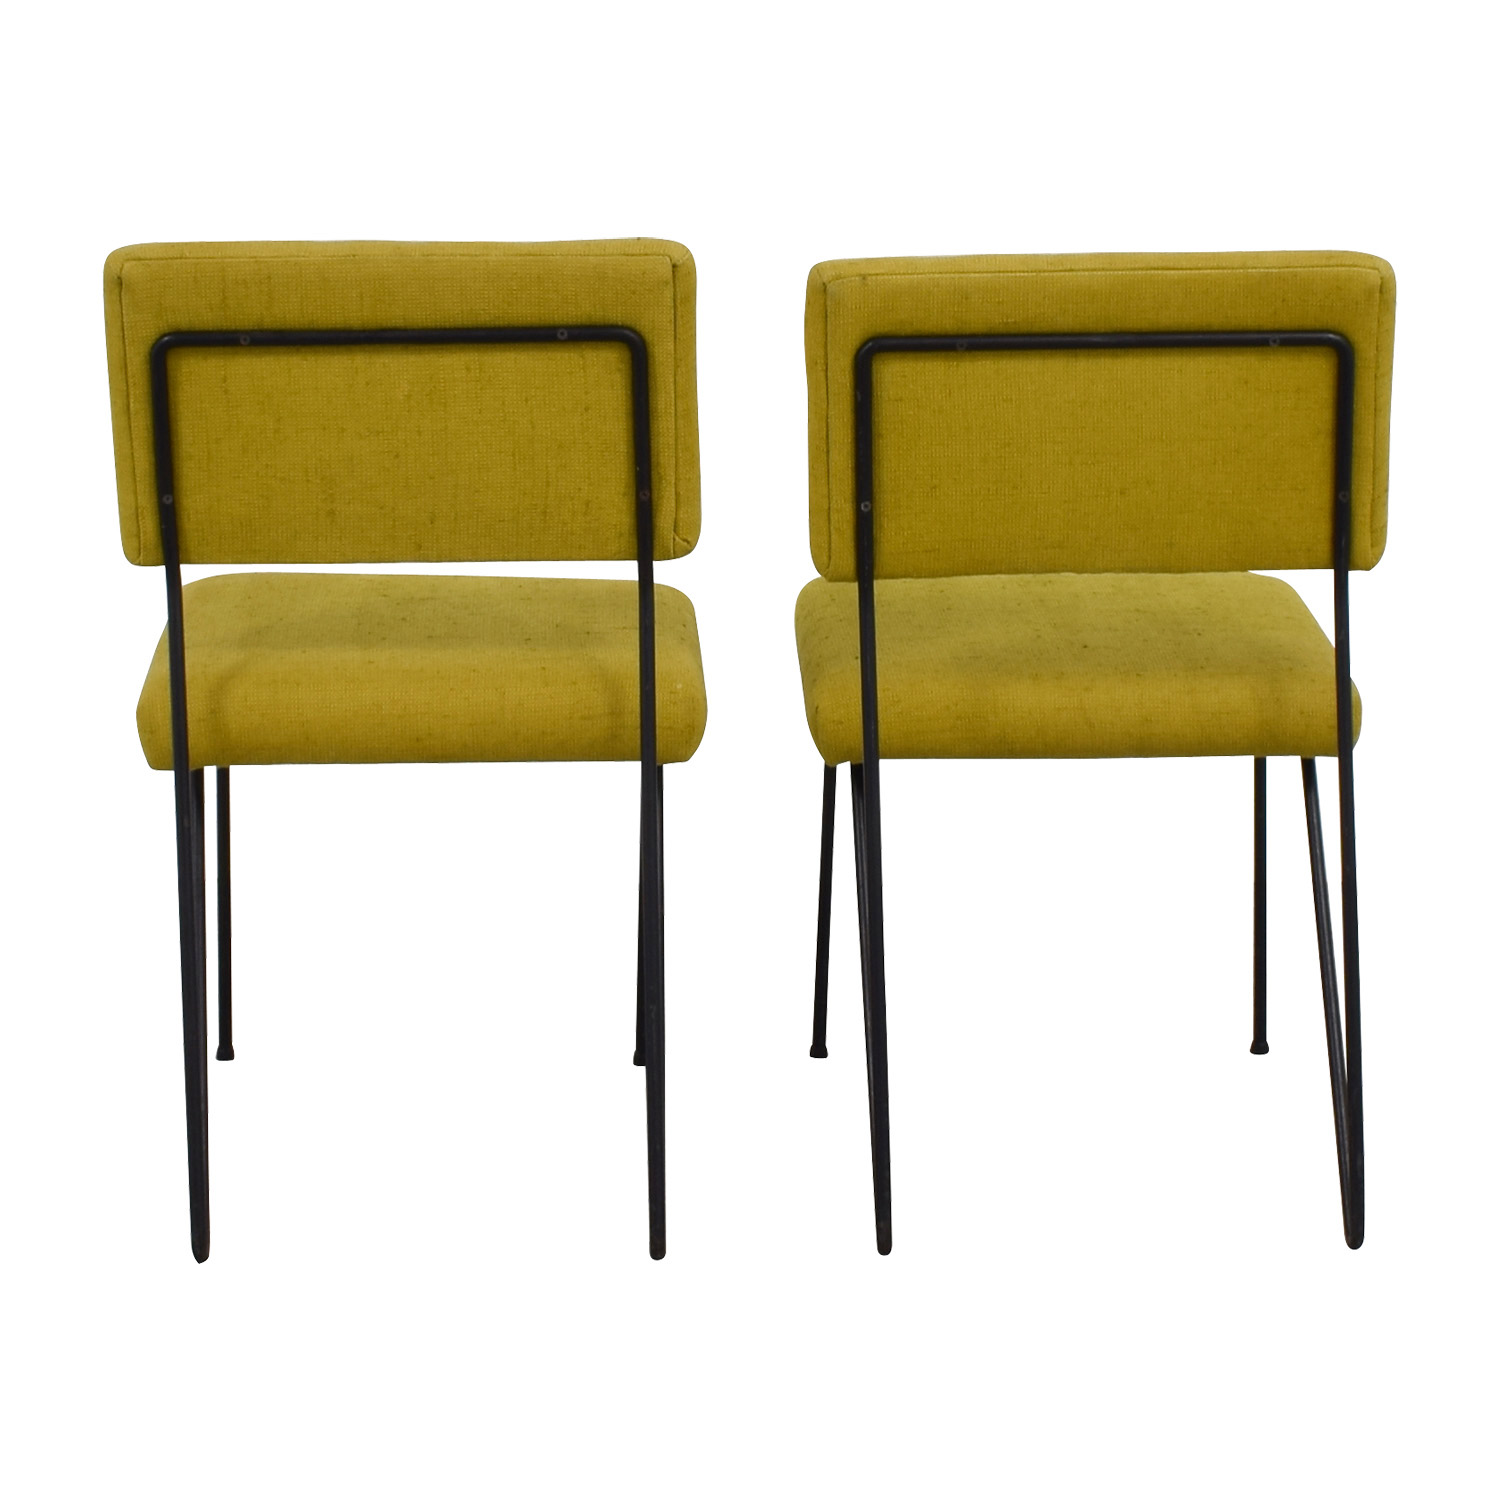 buy Furniture Masters Green Fabric and Metal Chairs Furniture Masters